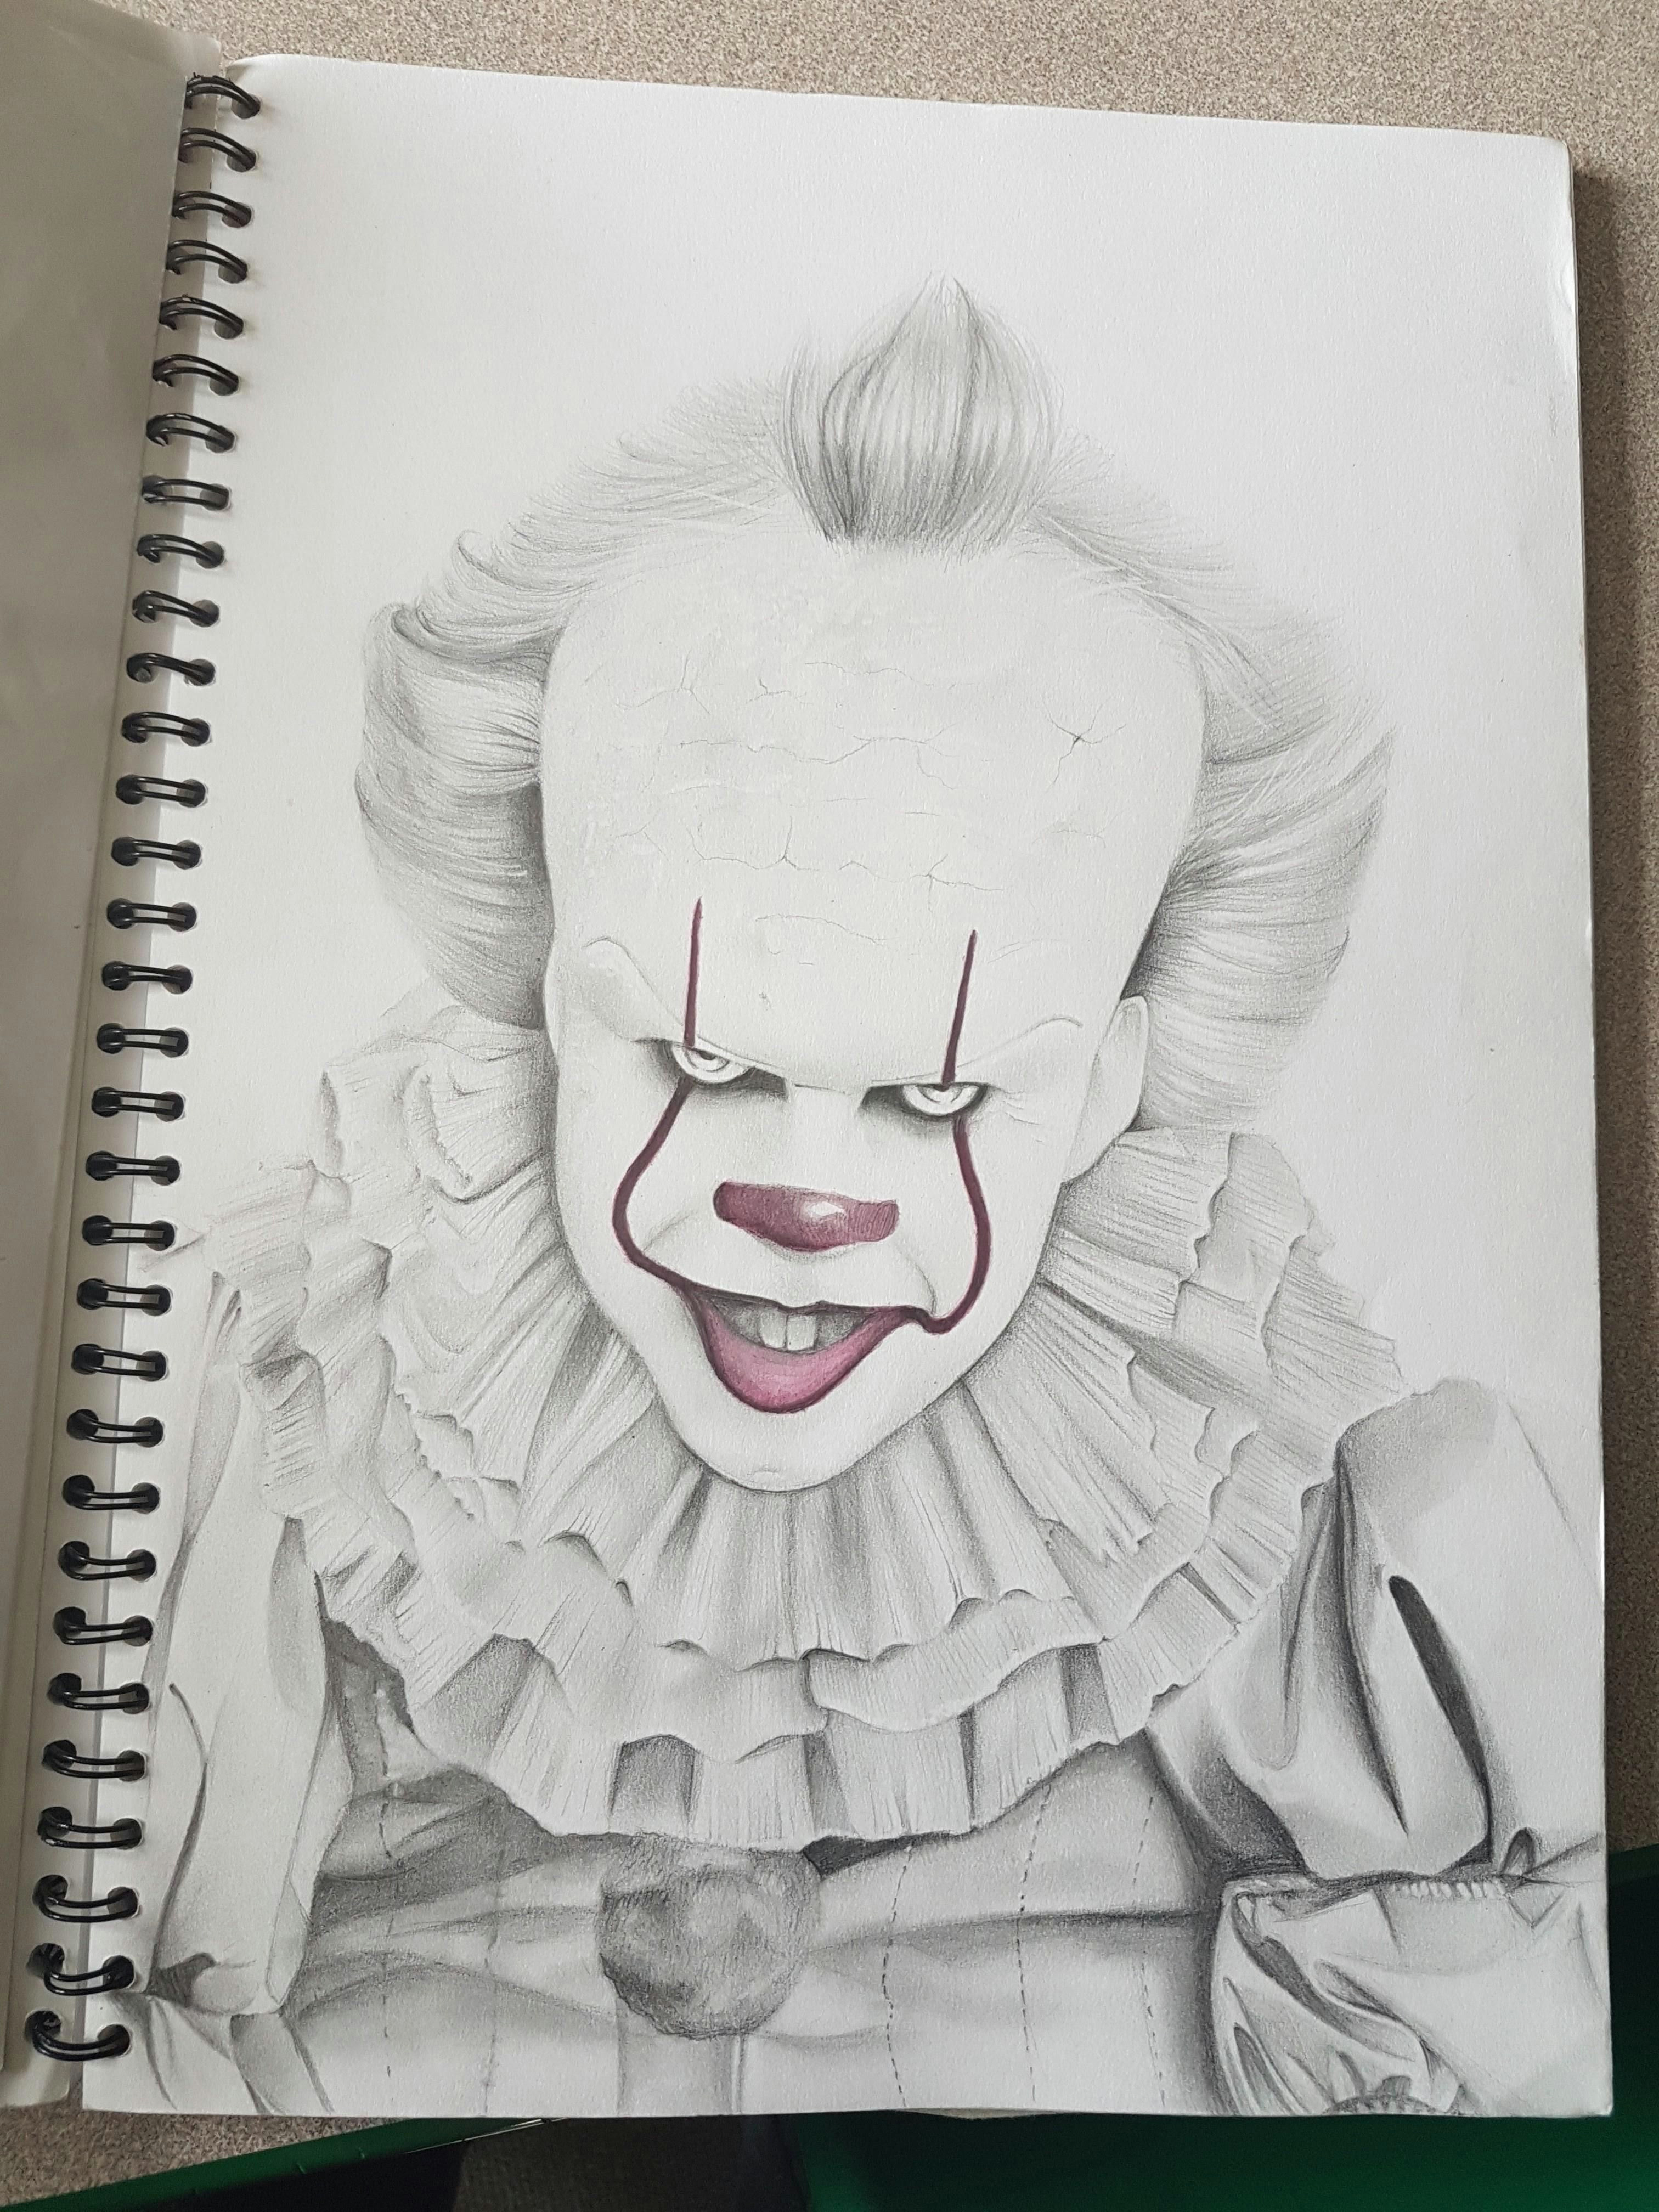 pennywise george young pencil 2017 visit http www omnipopmag com